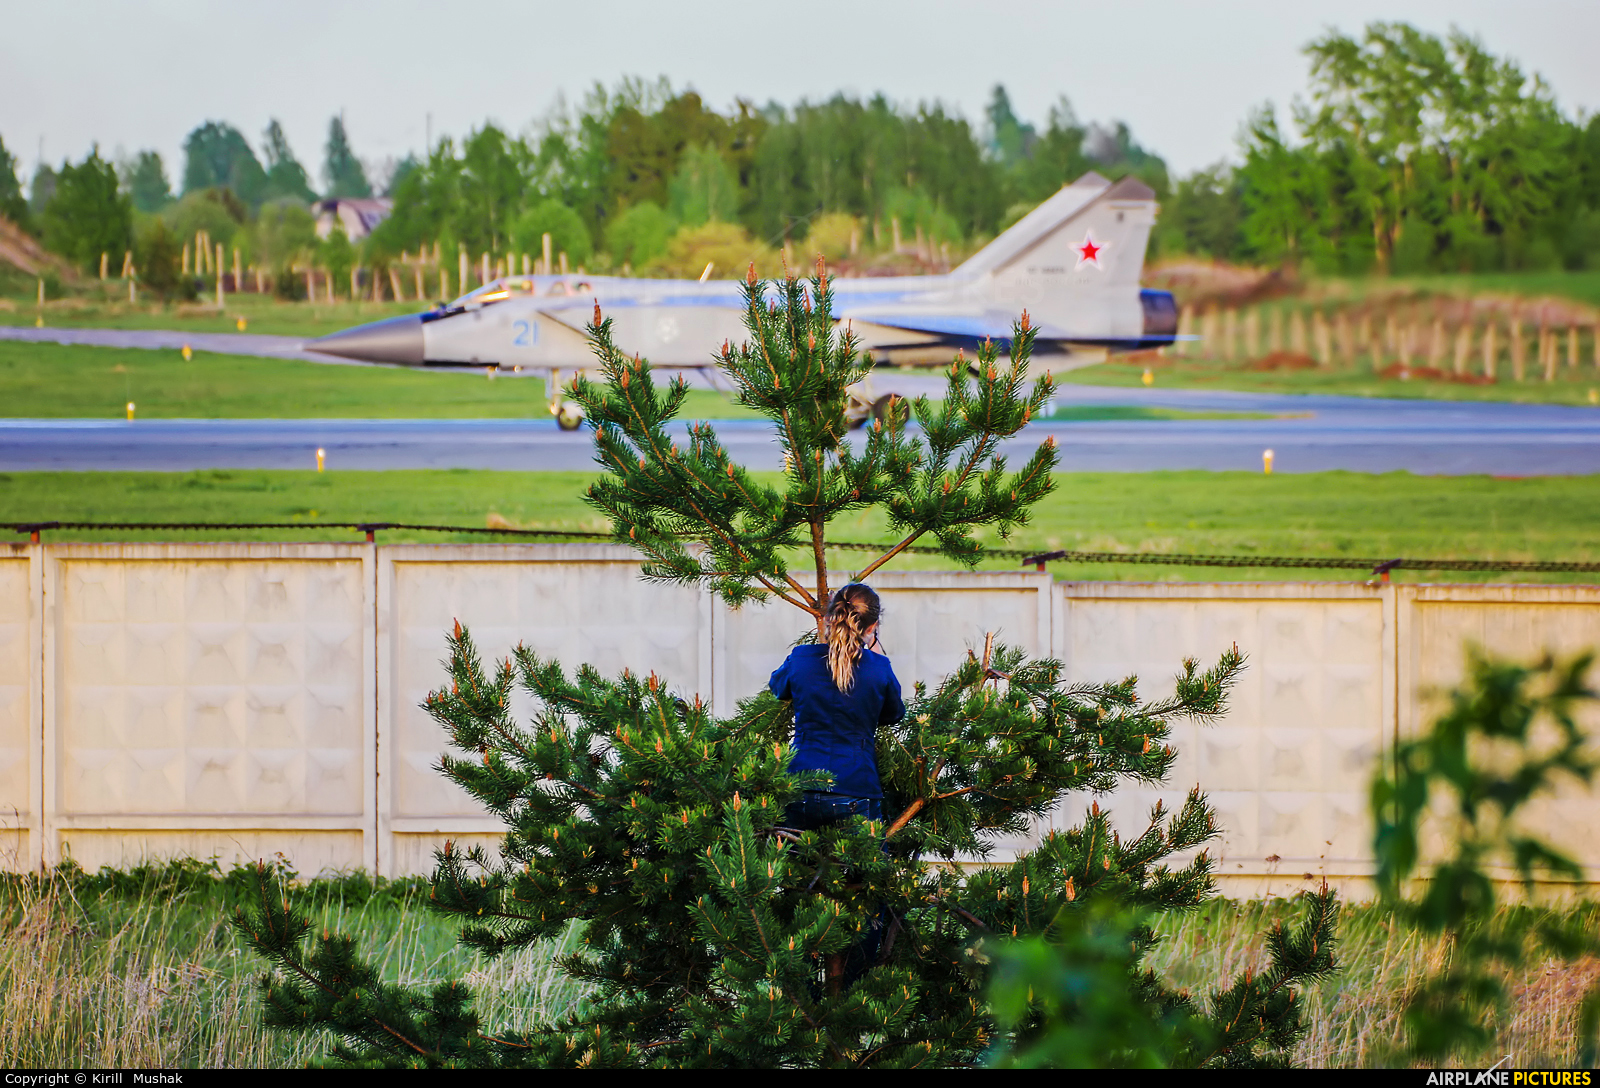 Russia - Air Force RF-92474 aircraft at Undisclosed Location